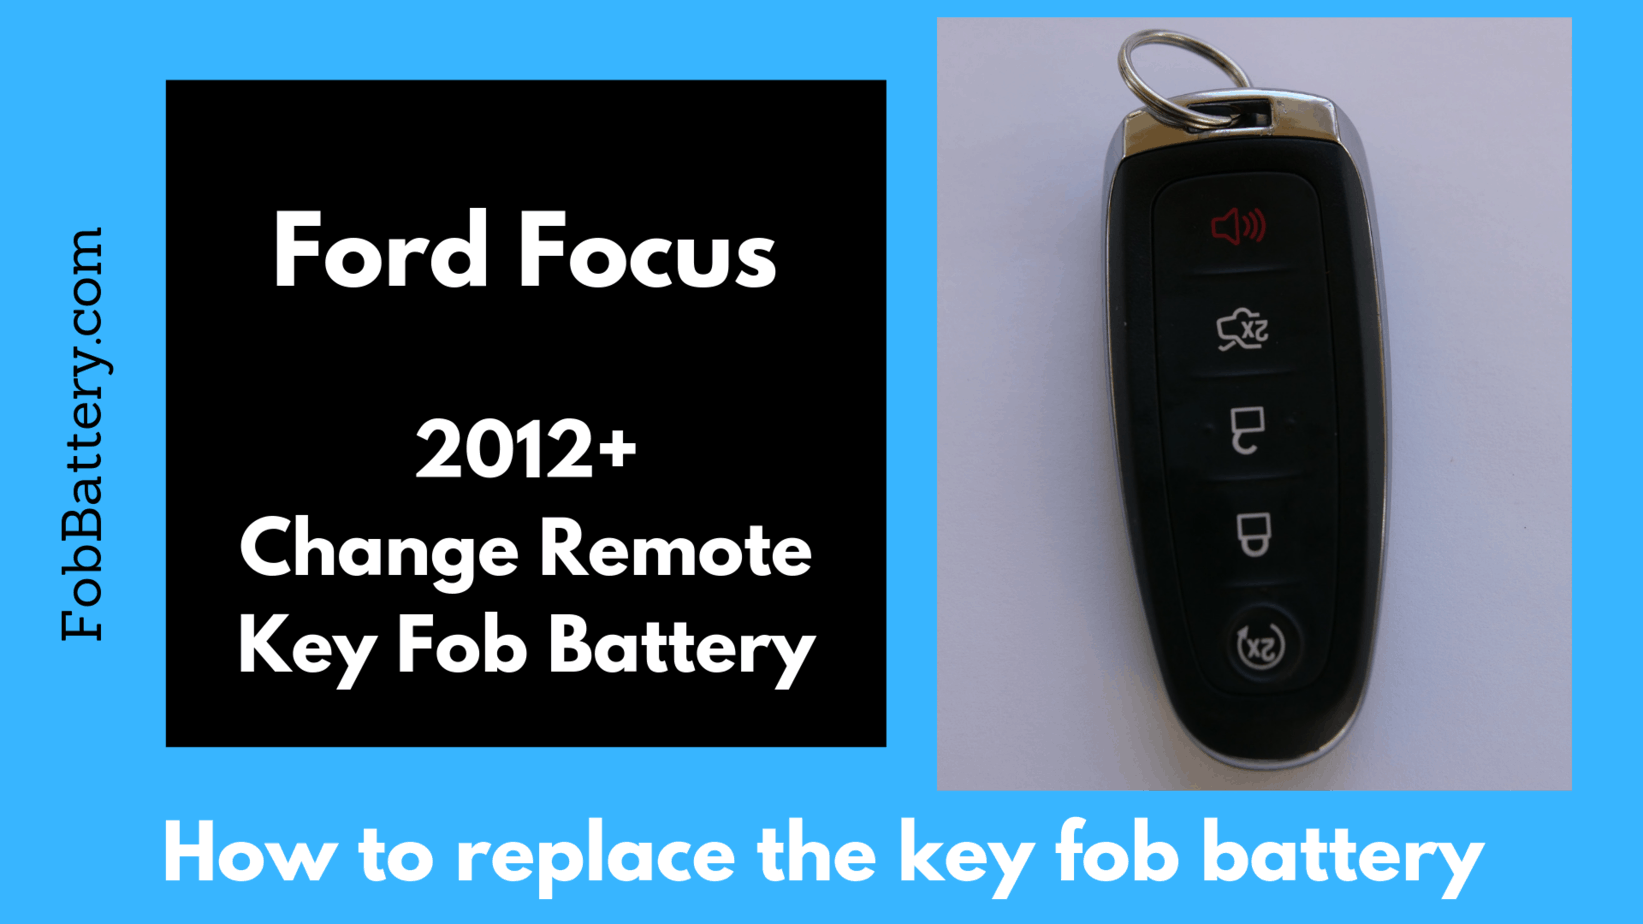 Ford Focus Key Fob Battery Replacement Easy How To Guide